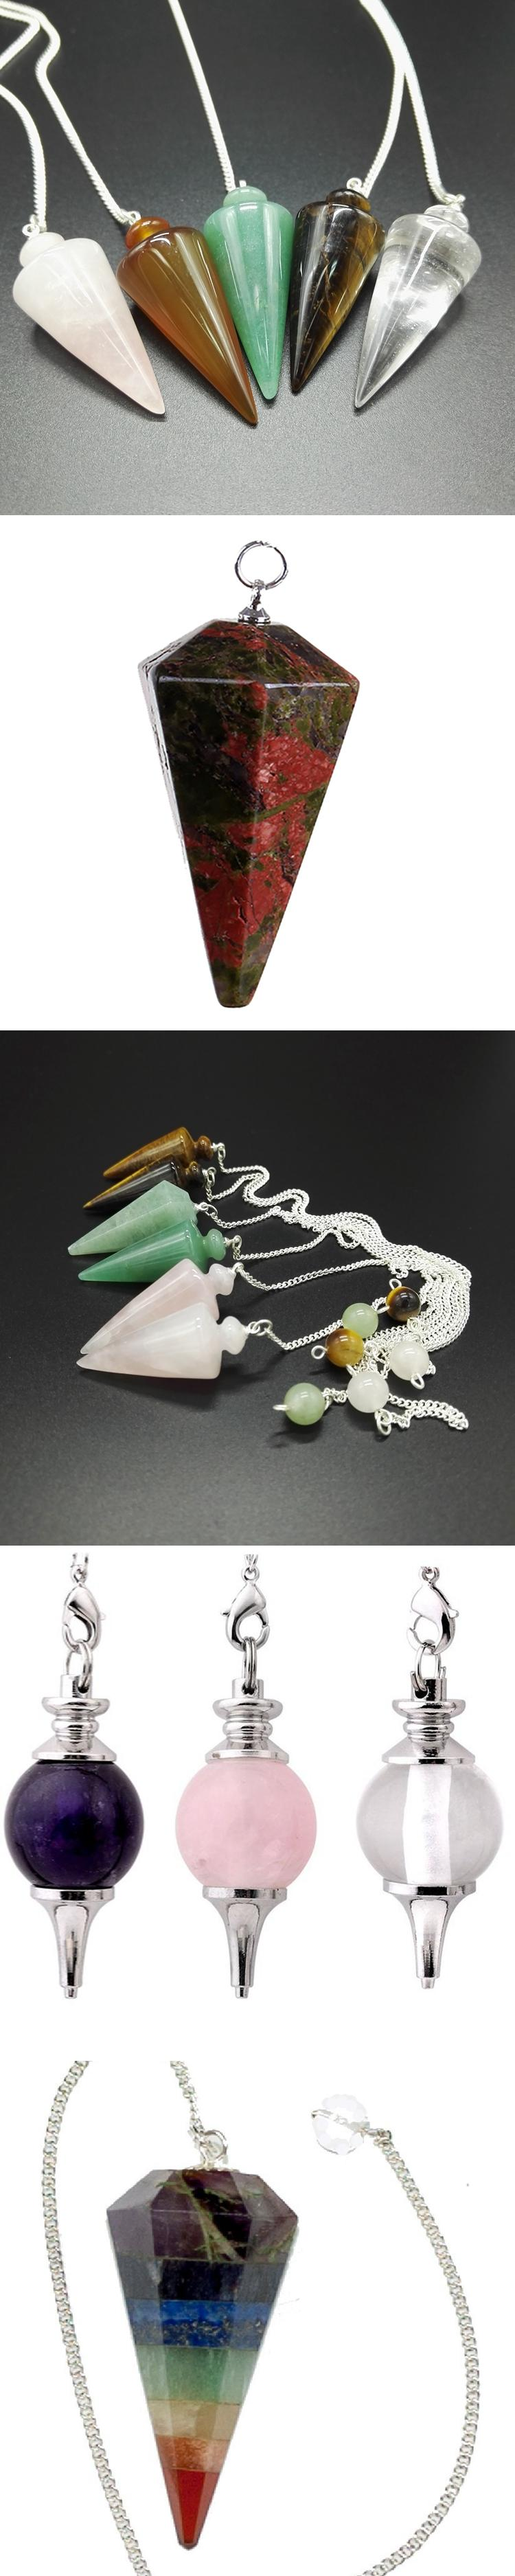 Wedding gifts for guests souvenirs gemstones chakra energy crystal pendulum